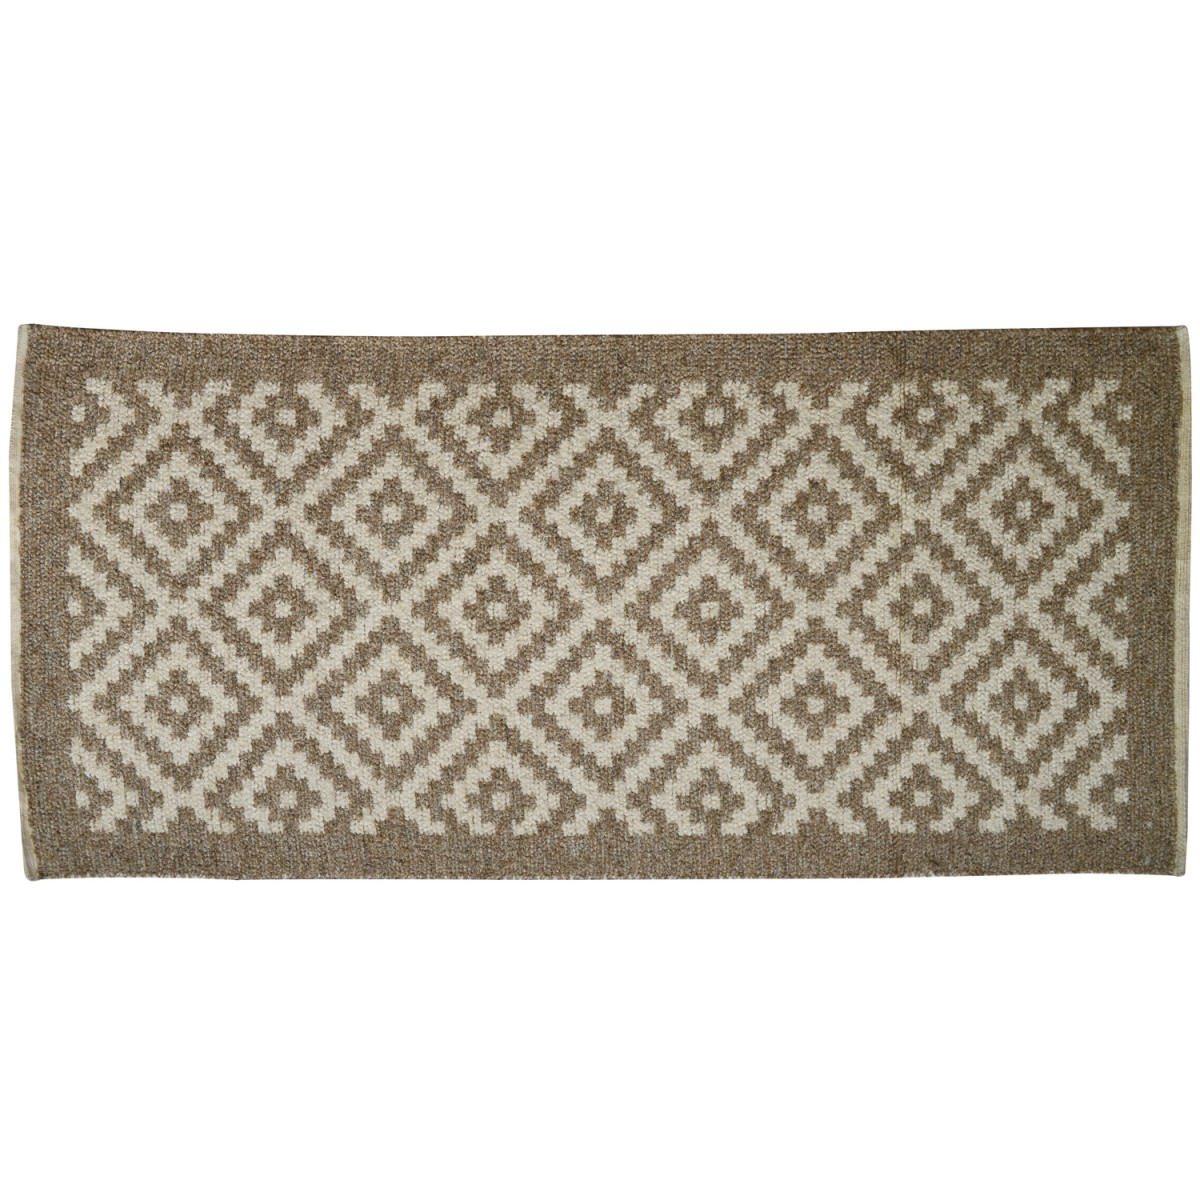 Island_Two-Sided_Cotton-Rug-Beige-1